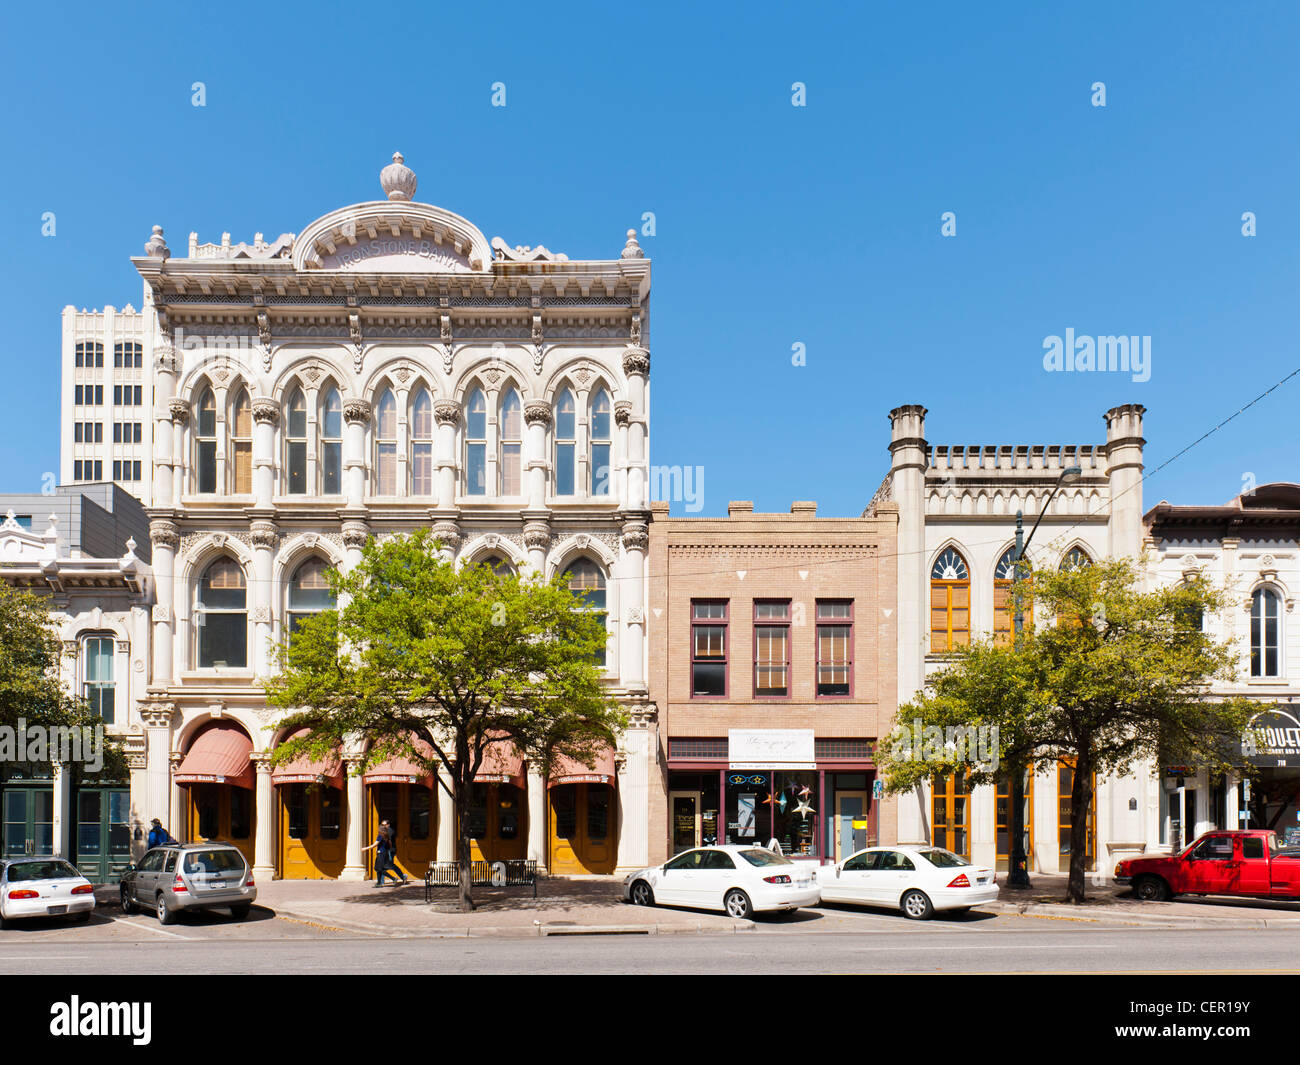 Walter Tips Building, Austin, TX - Stock Image